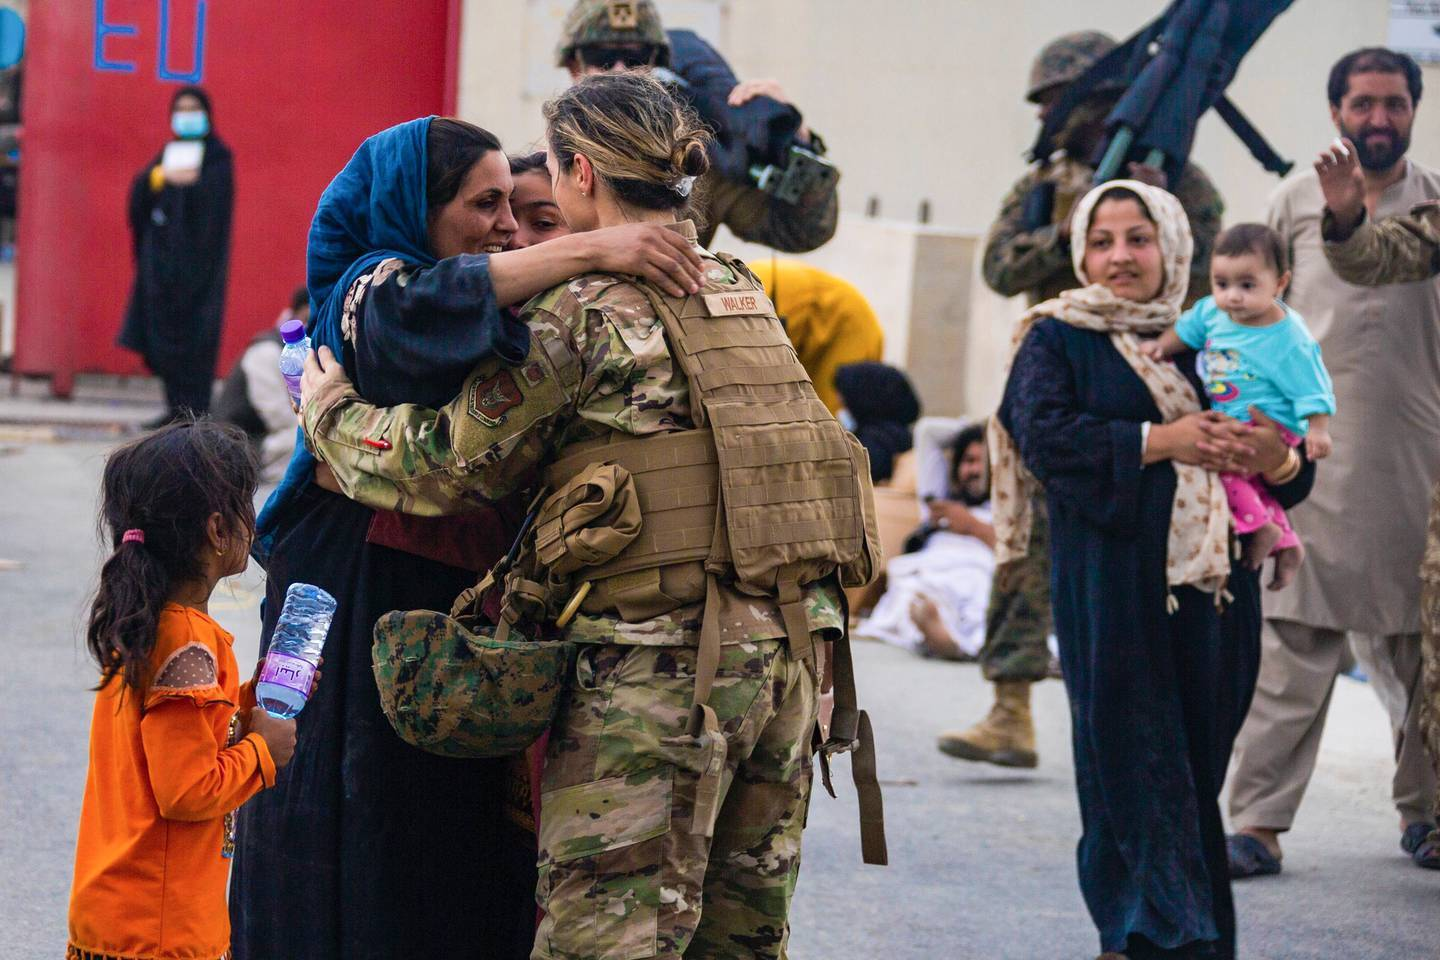 A US Airman with the Joint Task Force-Crisis Response embraces a mother after helping reunite their family at Hamid Karzai International Airport in Kabul. Photo / AP